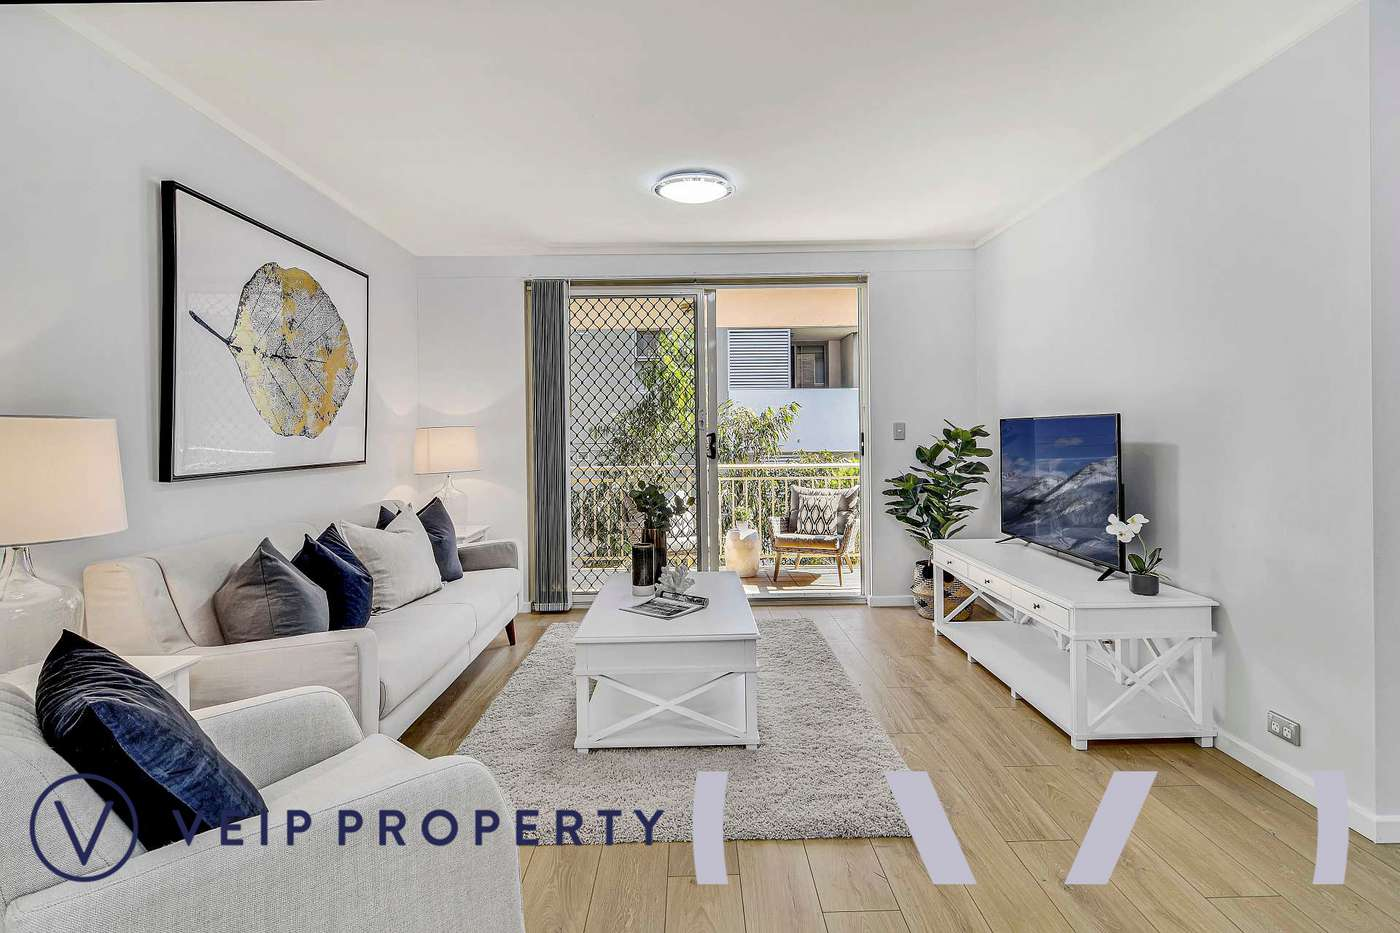 Main view of Homely apartment listing, 210/65 Shaftsbury Road, Burwood, NSW 2134